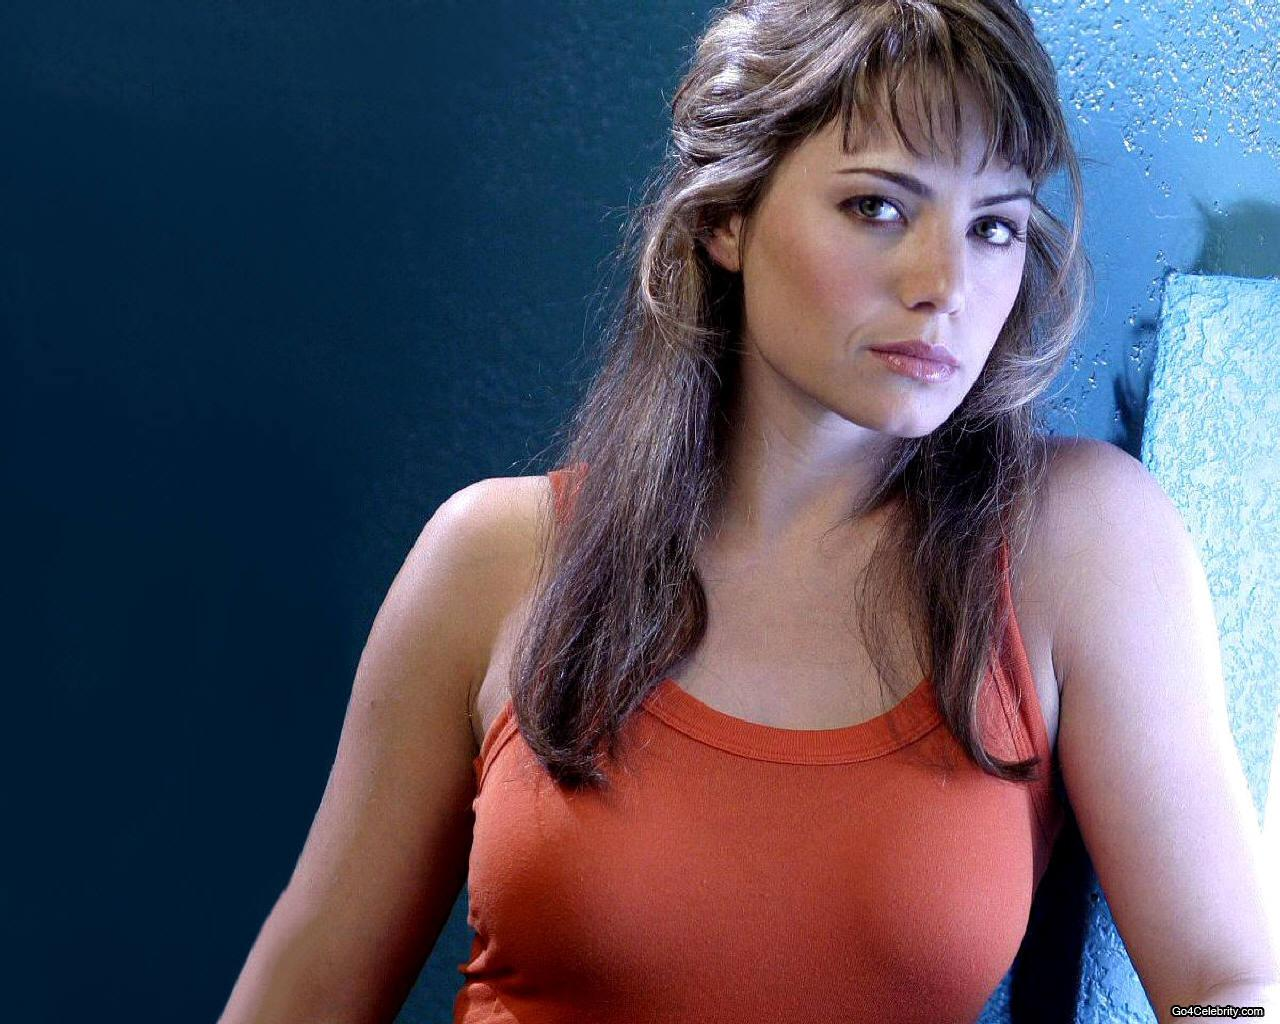 Erica Durance hd Wallpaper